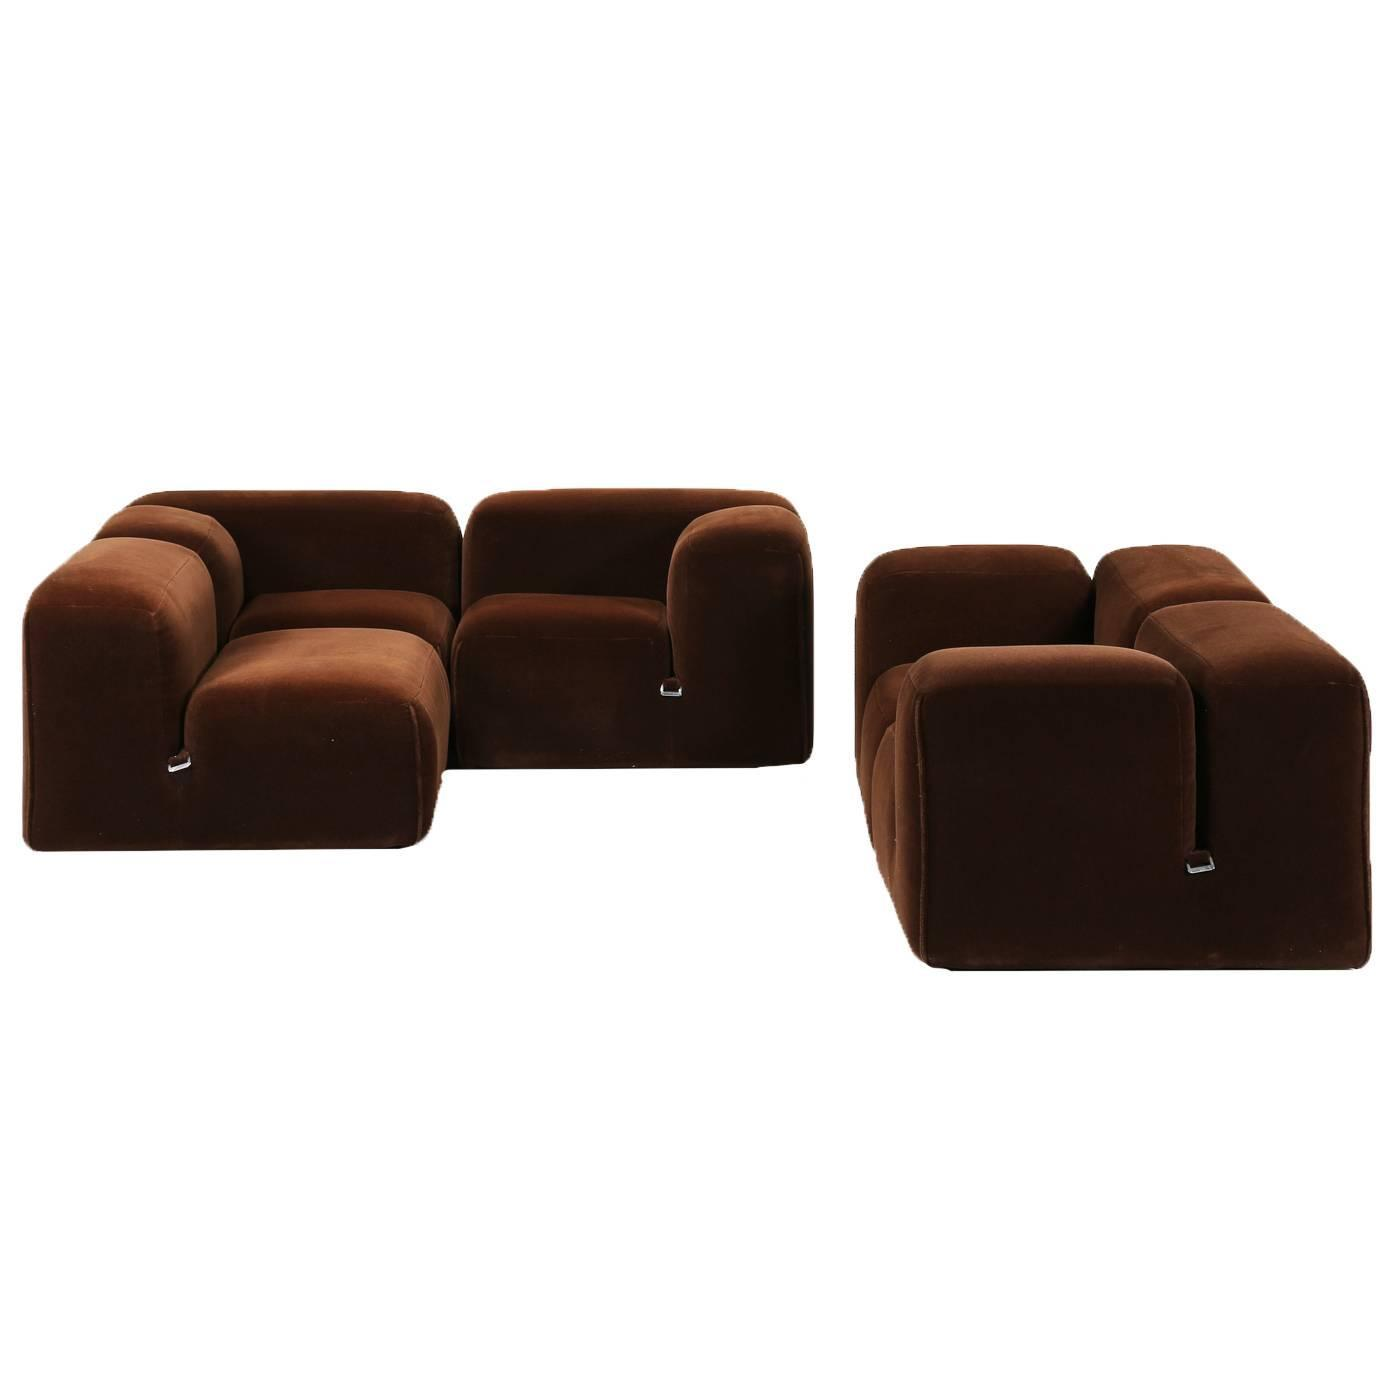 mario bellini dark brown velvet le mura sofa range. Black Bedroom Furniture Sets. Home Design Ideas